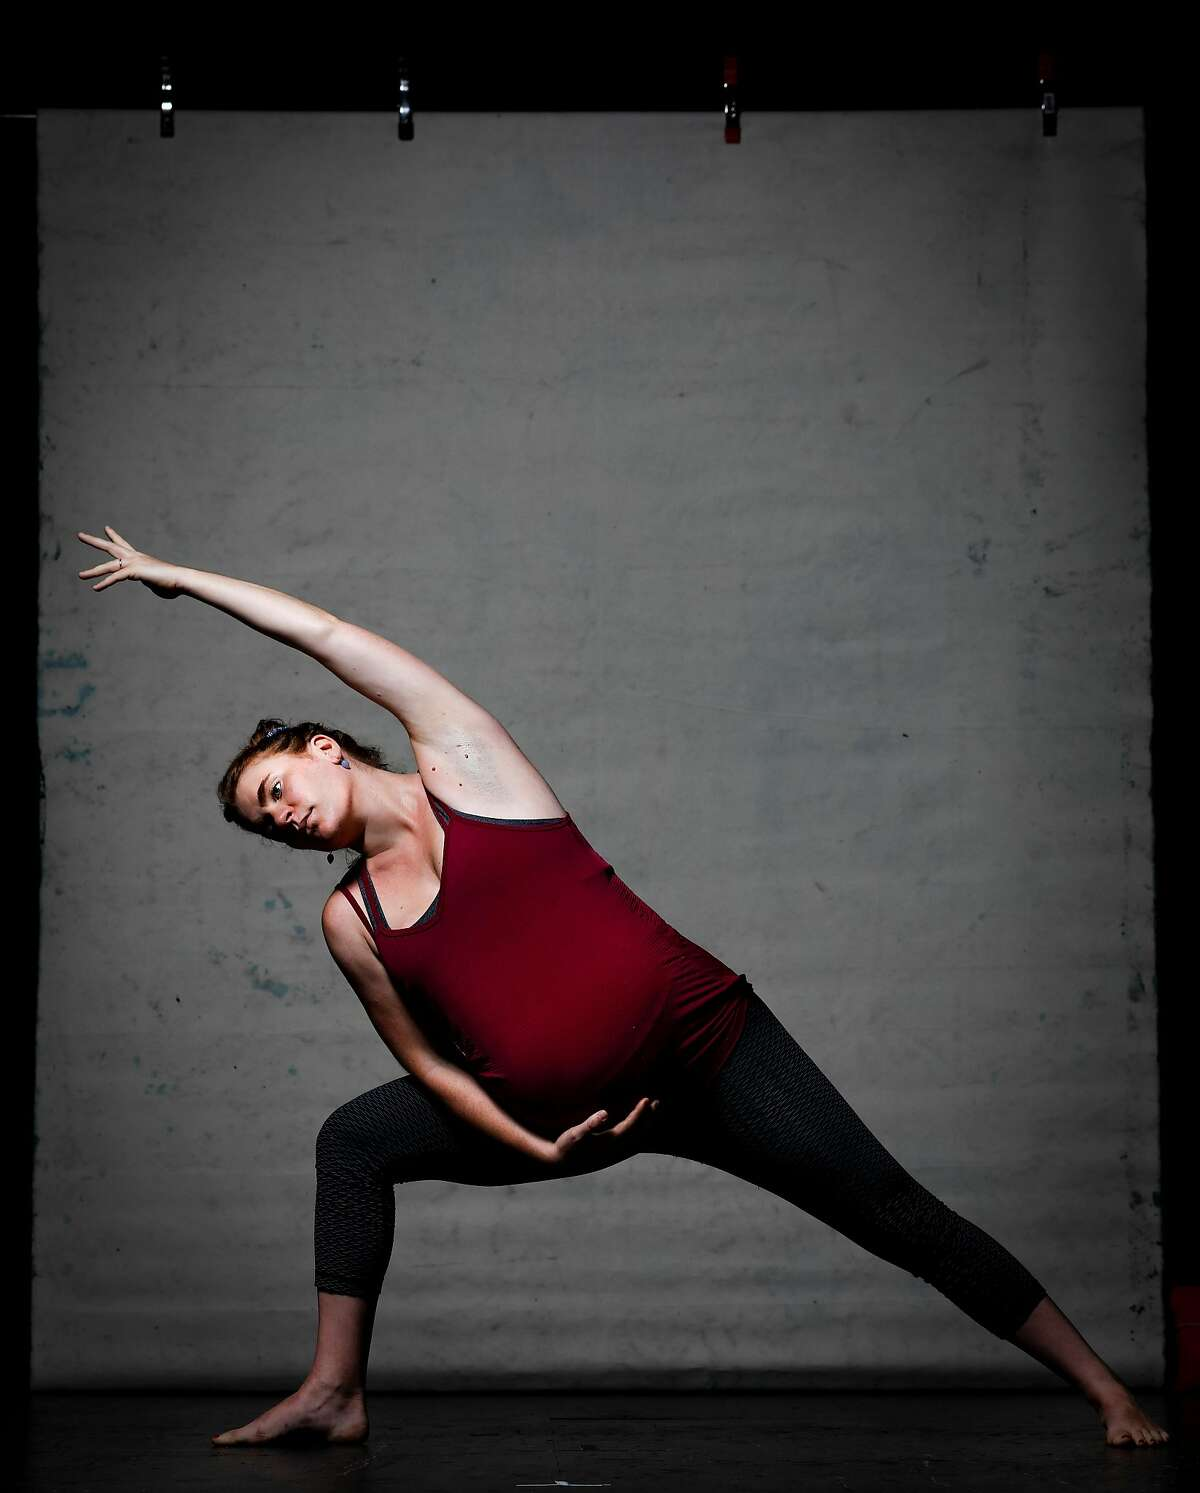 Charlotte Bruce-Byrne, who has been practicing yoga at Yoga Tree with Jane Austin, strikes the tapas arm work pose on Thursday, Sept. 12, 2019 in San Francisco, Calif.